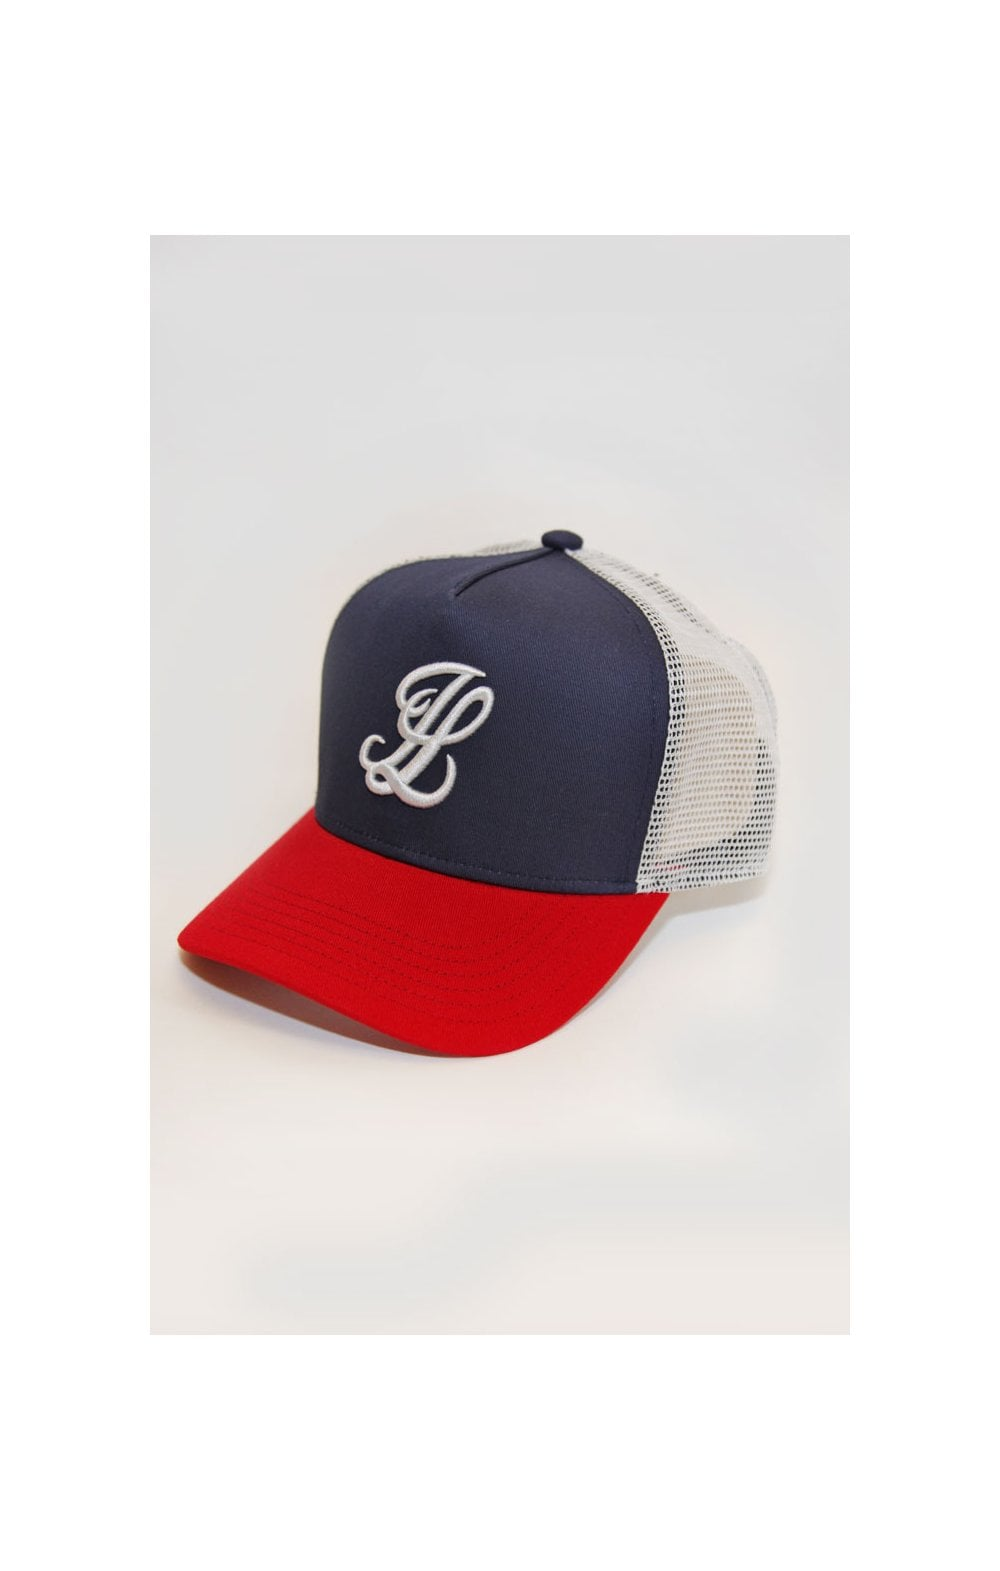 Illusive London Mesh Trucker - Navy, Red & White